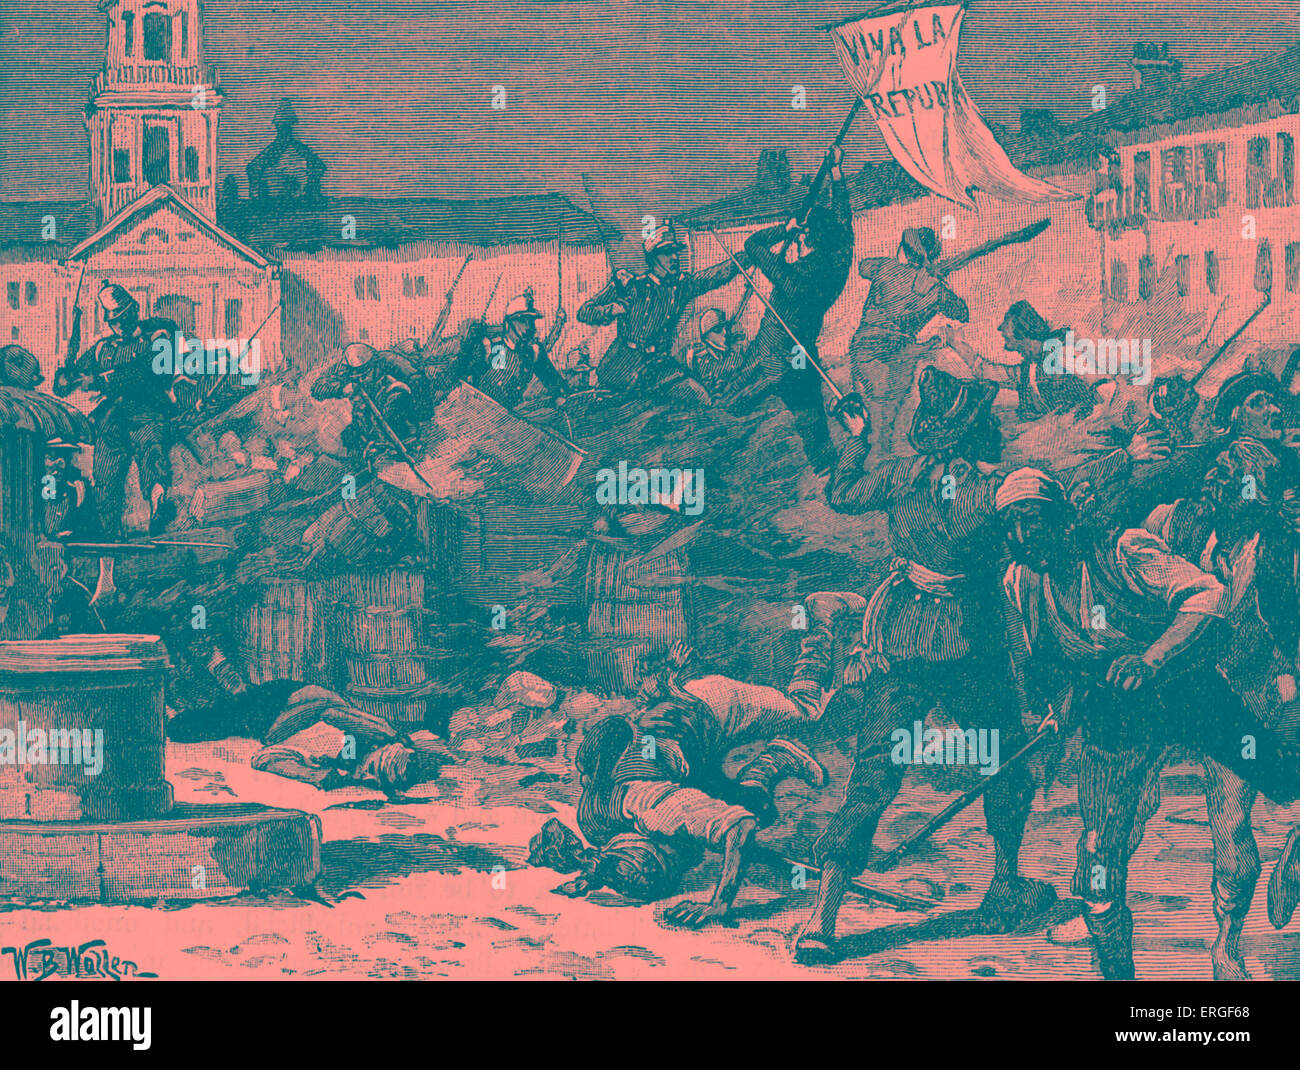 Street fighting in Malaga, Spain during Glorious Revolution (La Gloriosa), 1868. Led to deposition of Queen Isabella Stock Photo